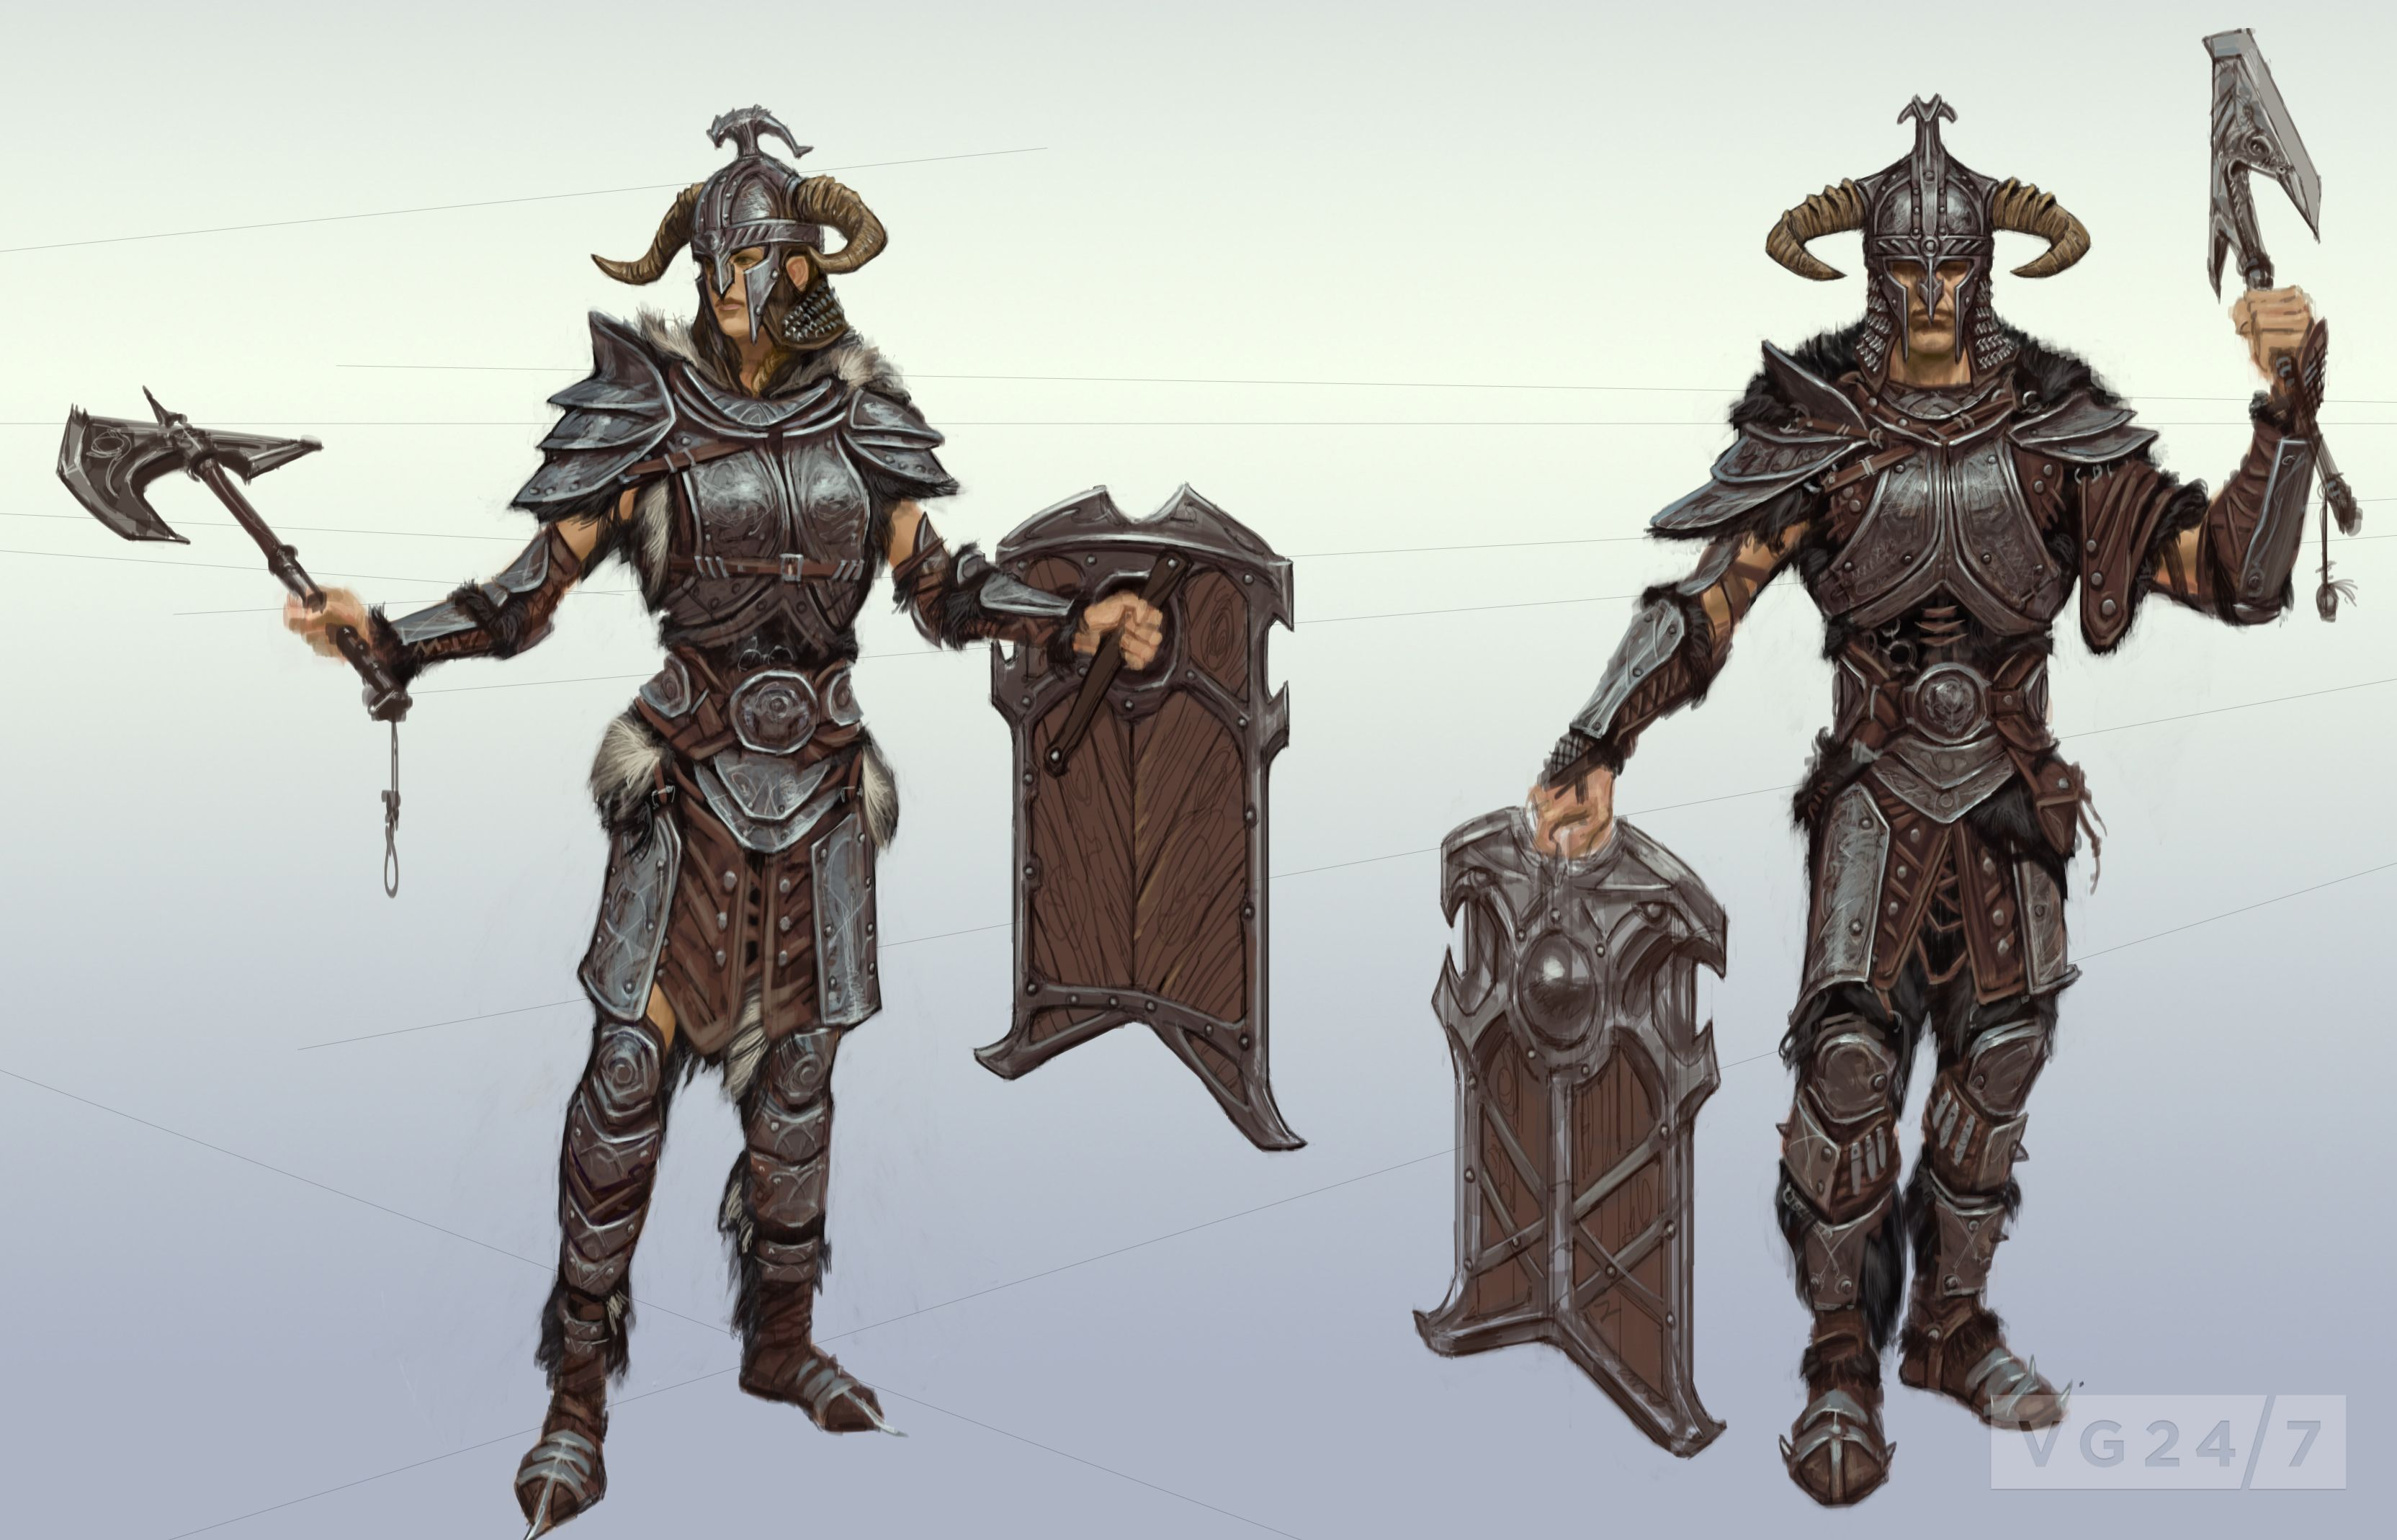 skyrim concept art games and so on pinterest skyrim concept art skyrim and concept art. Black Bedroom Furniture Sets. Home Design Ideas